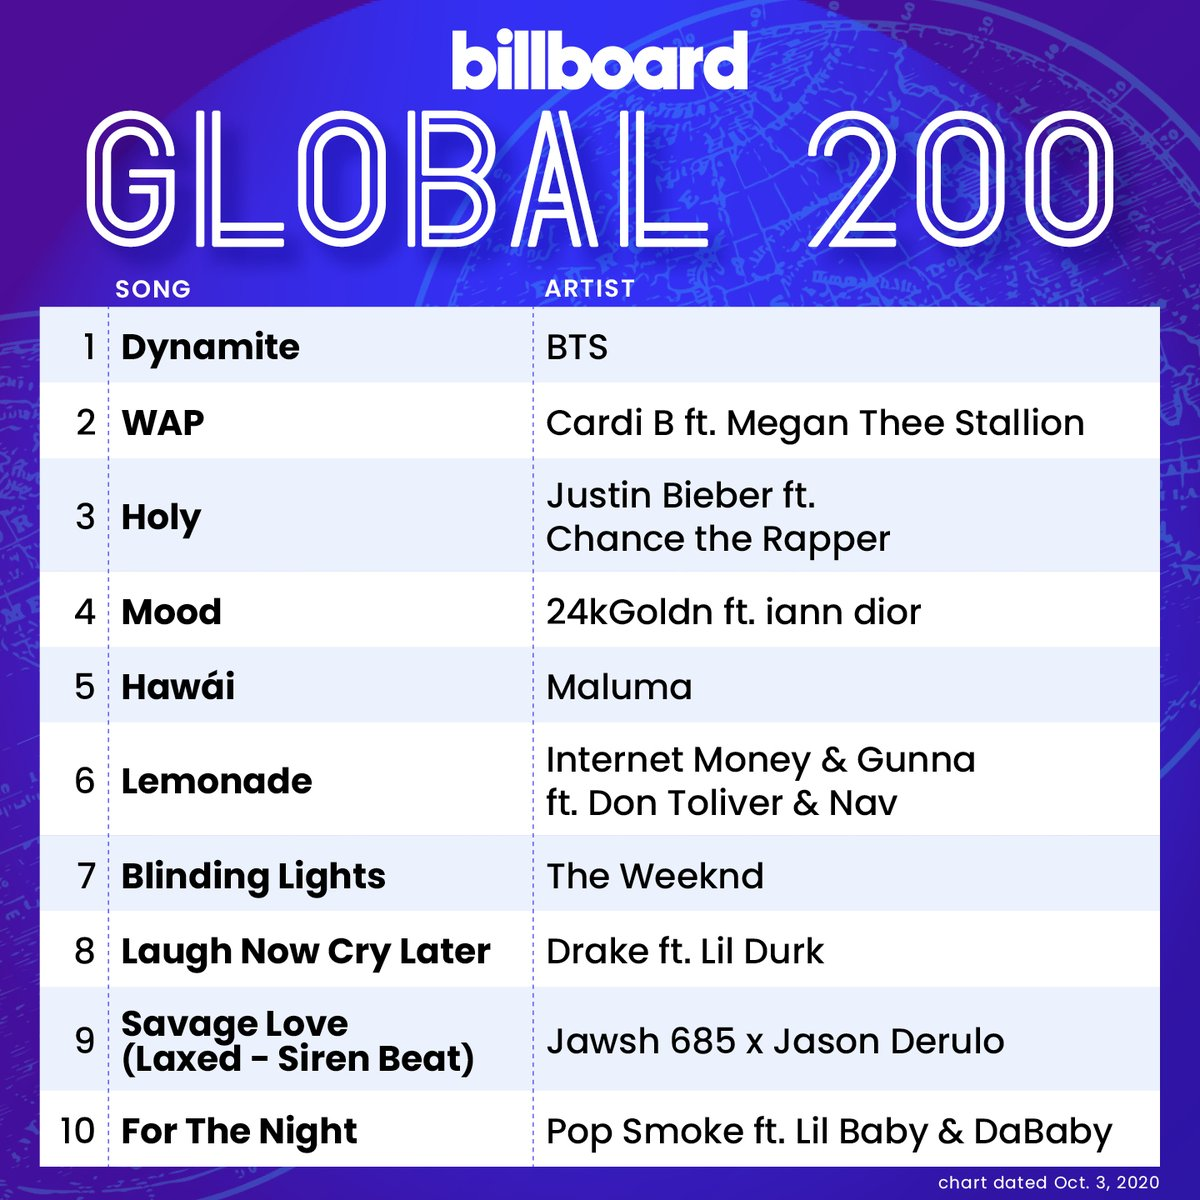 K Charts Translations On Twitter Bts Twt Becomes The First Act To Earn Multiple 1 Hits On The Billboard Global 200 Chart With Savage Love Bts Remix And Dynamite Https T Co Fpkr2rpwl1